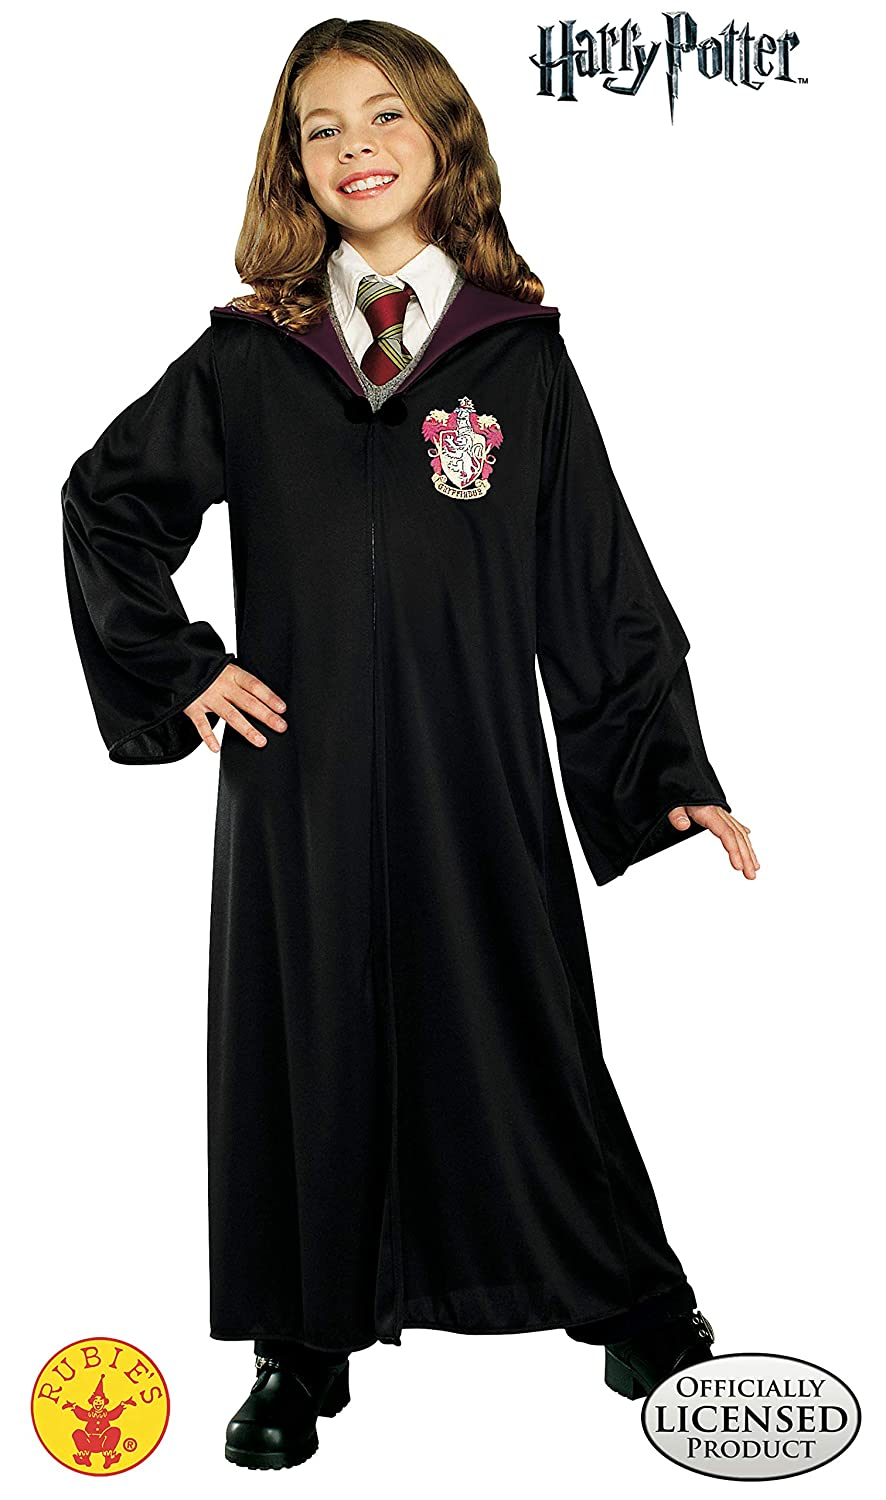 Come fare costume di Harry Potter per la festa di Carnevale